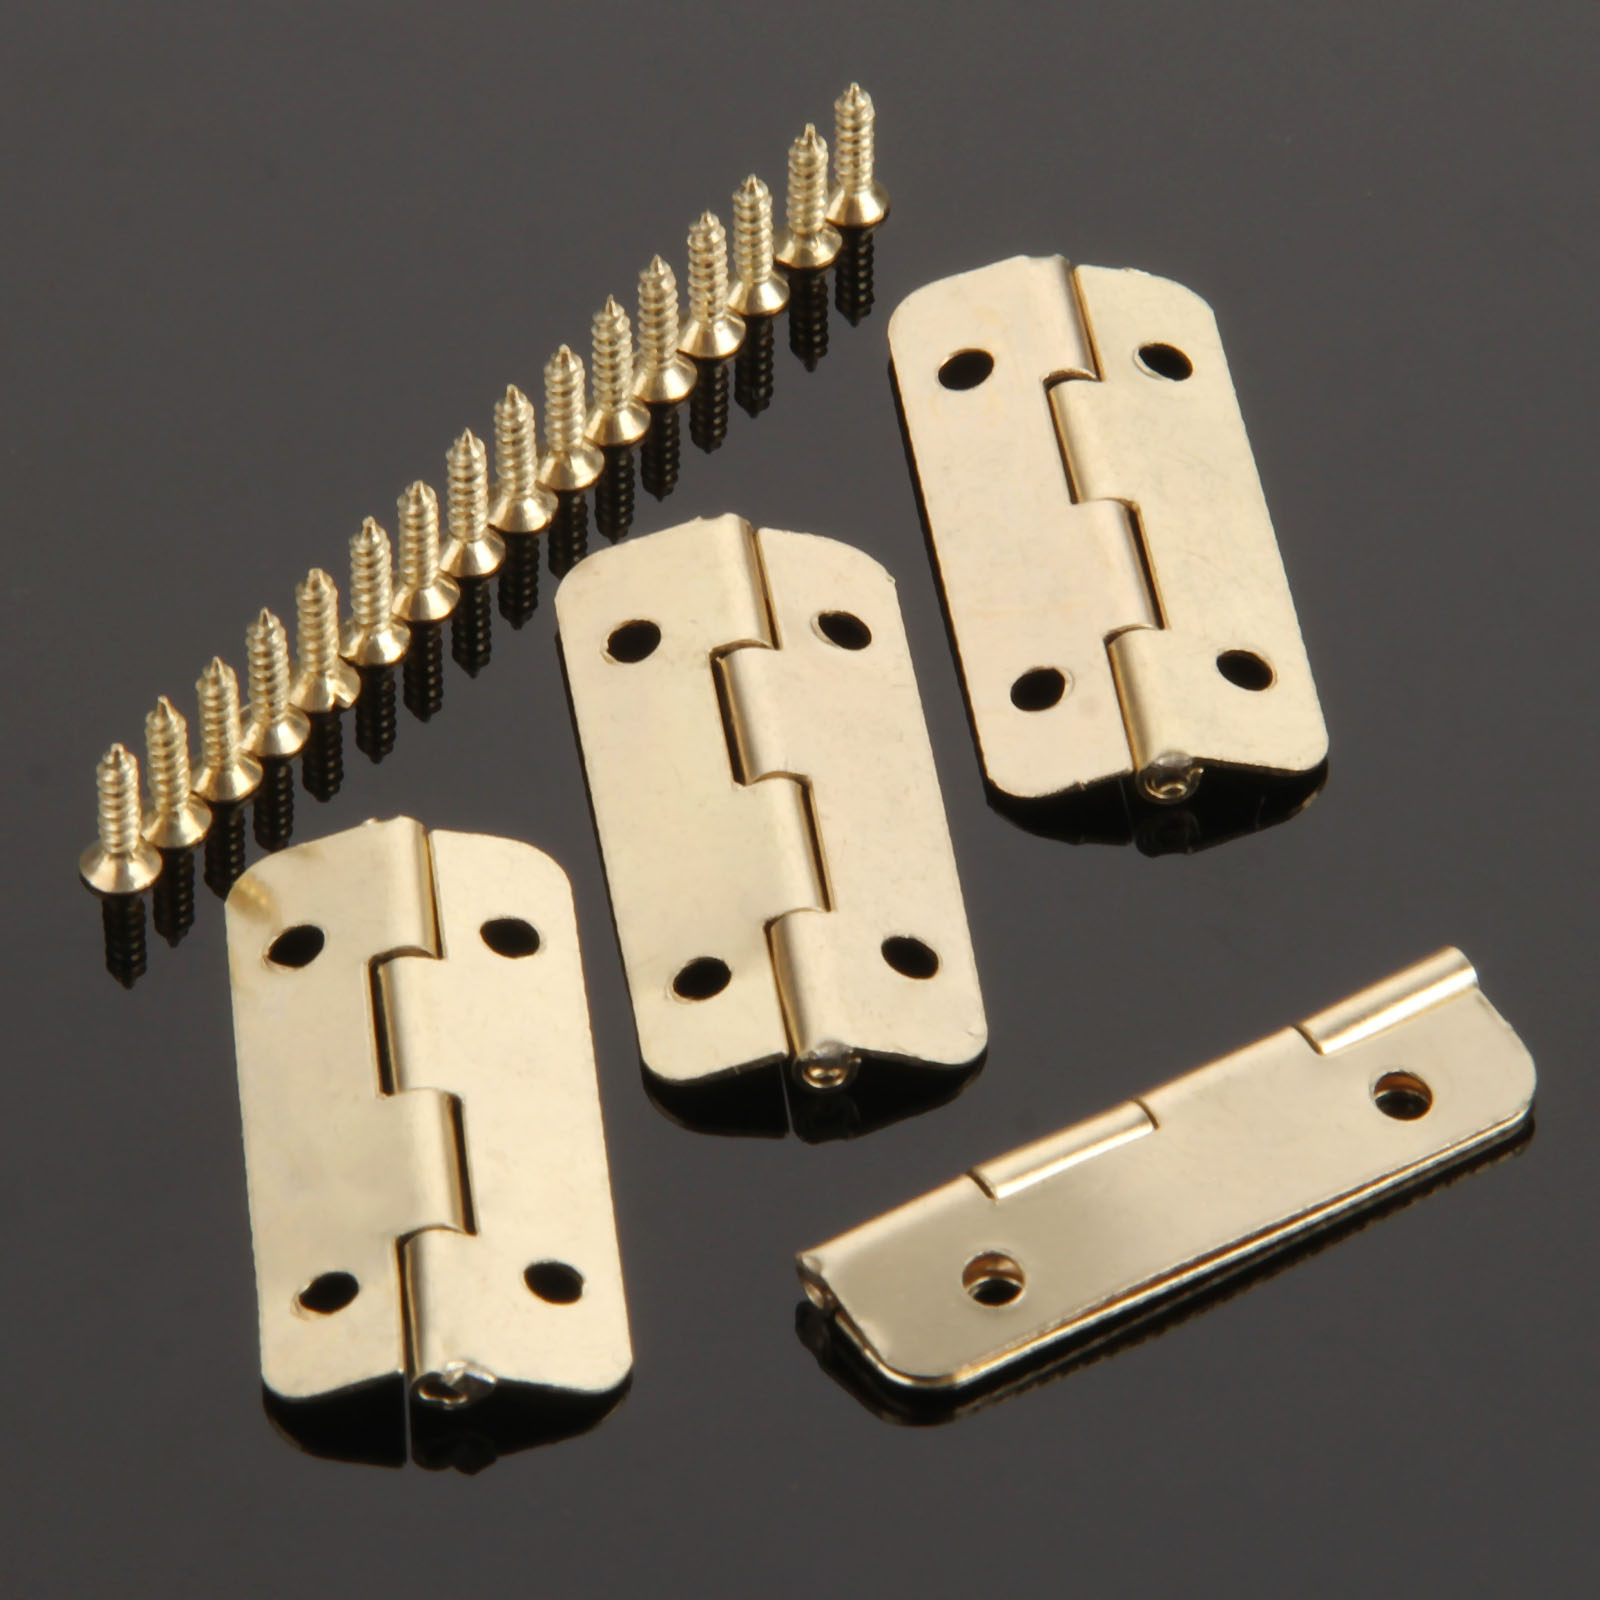 4Pcs 37mmx17mm Gold Furniture Hinges for Box Door Butt Decorative Small Hinge for Cabinet Drawer Furniture Hardware with Screws 2pcs 90 degree concealed hinges cabinet cupboard furniture hinges bridge shaped door hinge with screws diy hardware tools mayitr